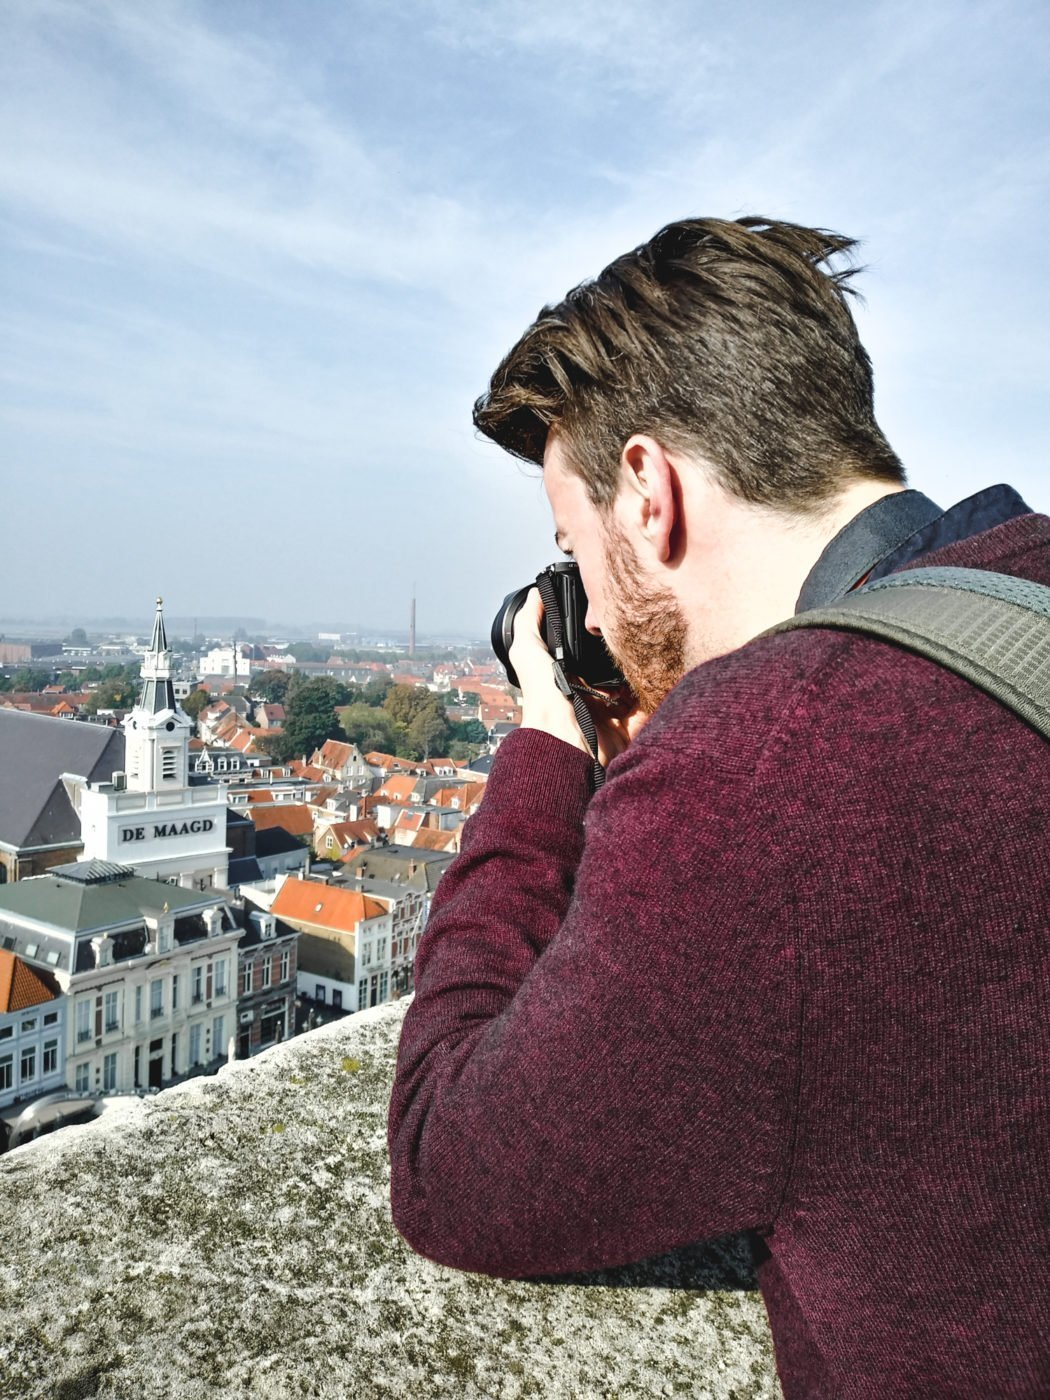 at the top of the St. Gertrude church tower